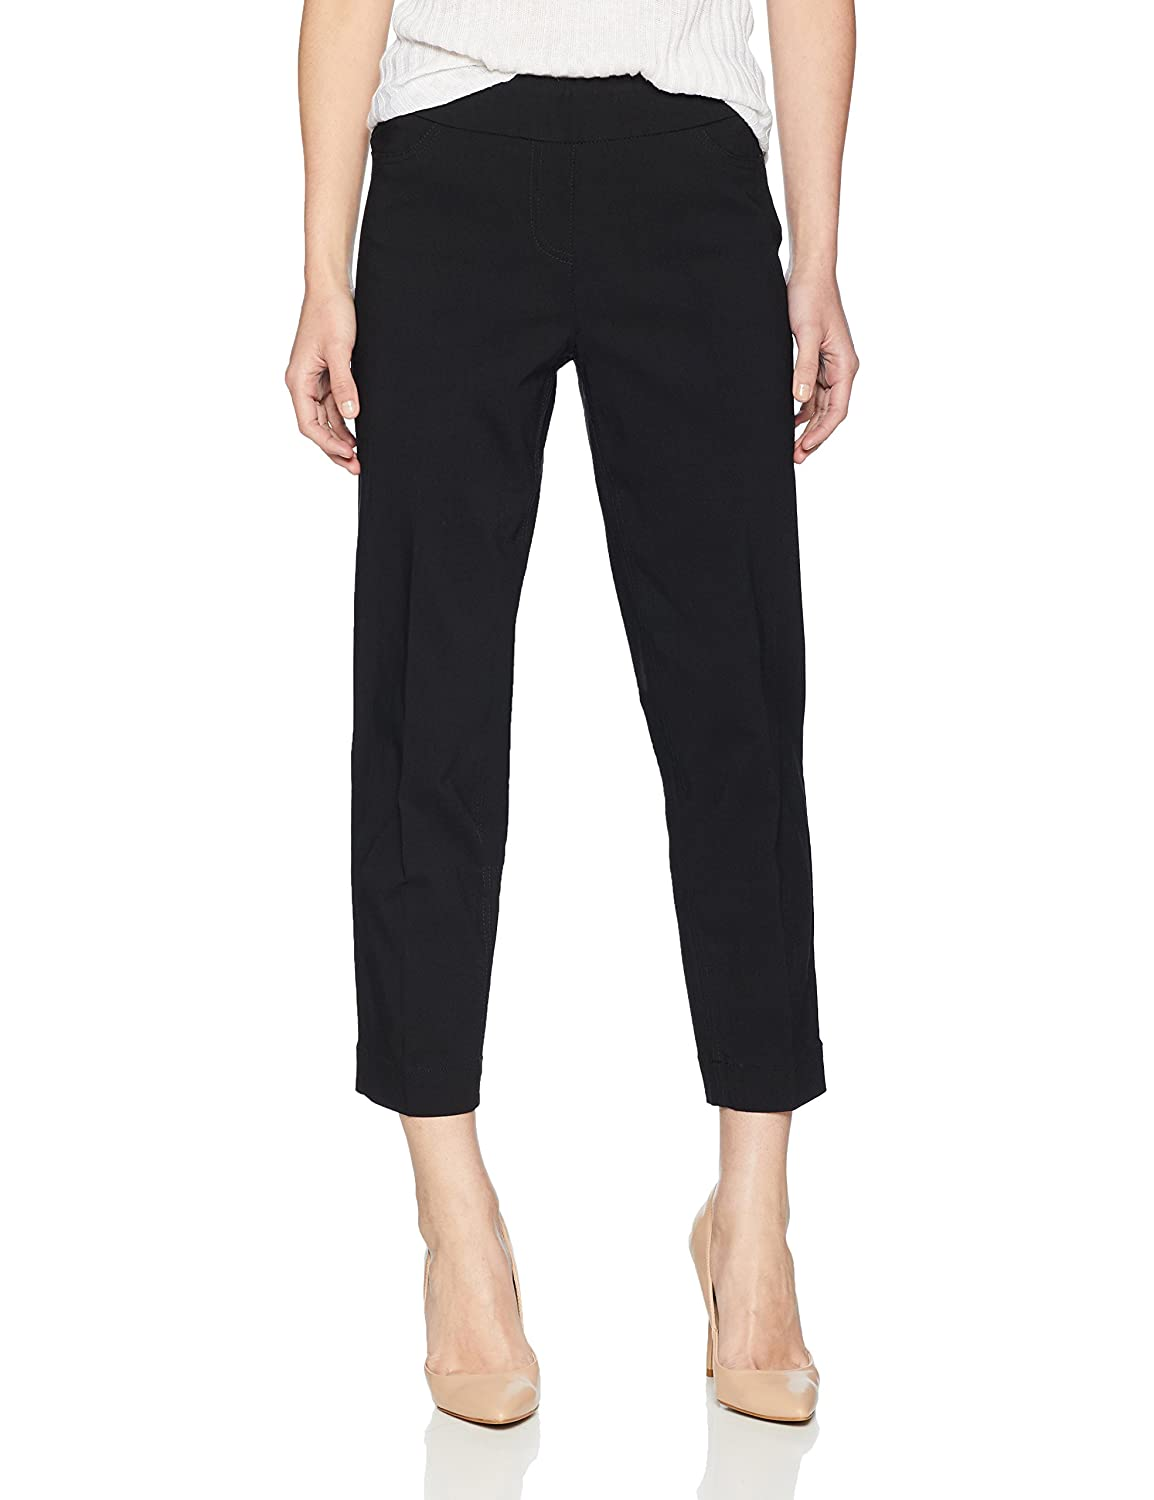 SLIM-SATION Womens Petite Pull On Skinny Solid Crop with Faux L Pockets